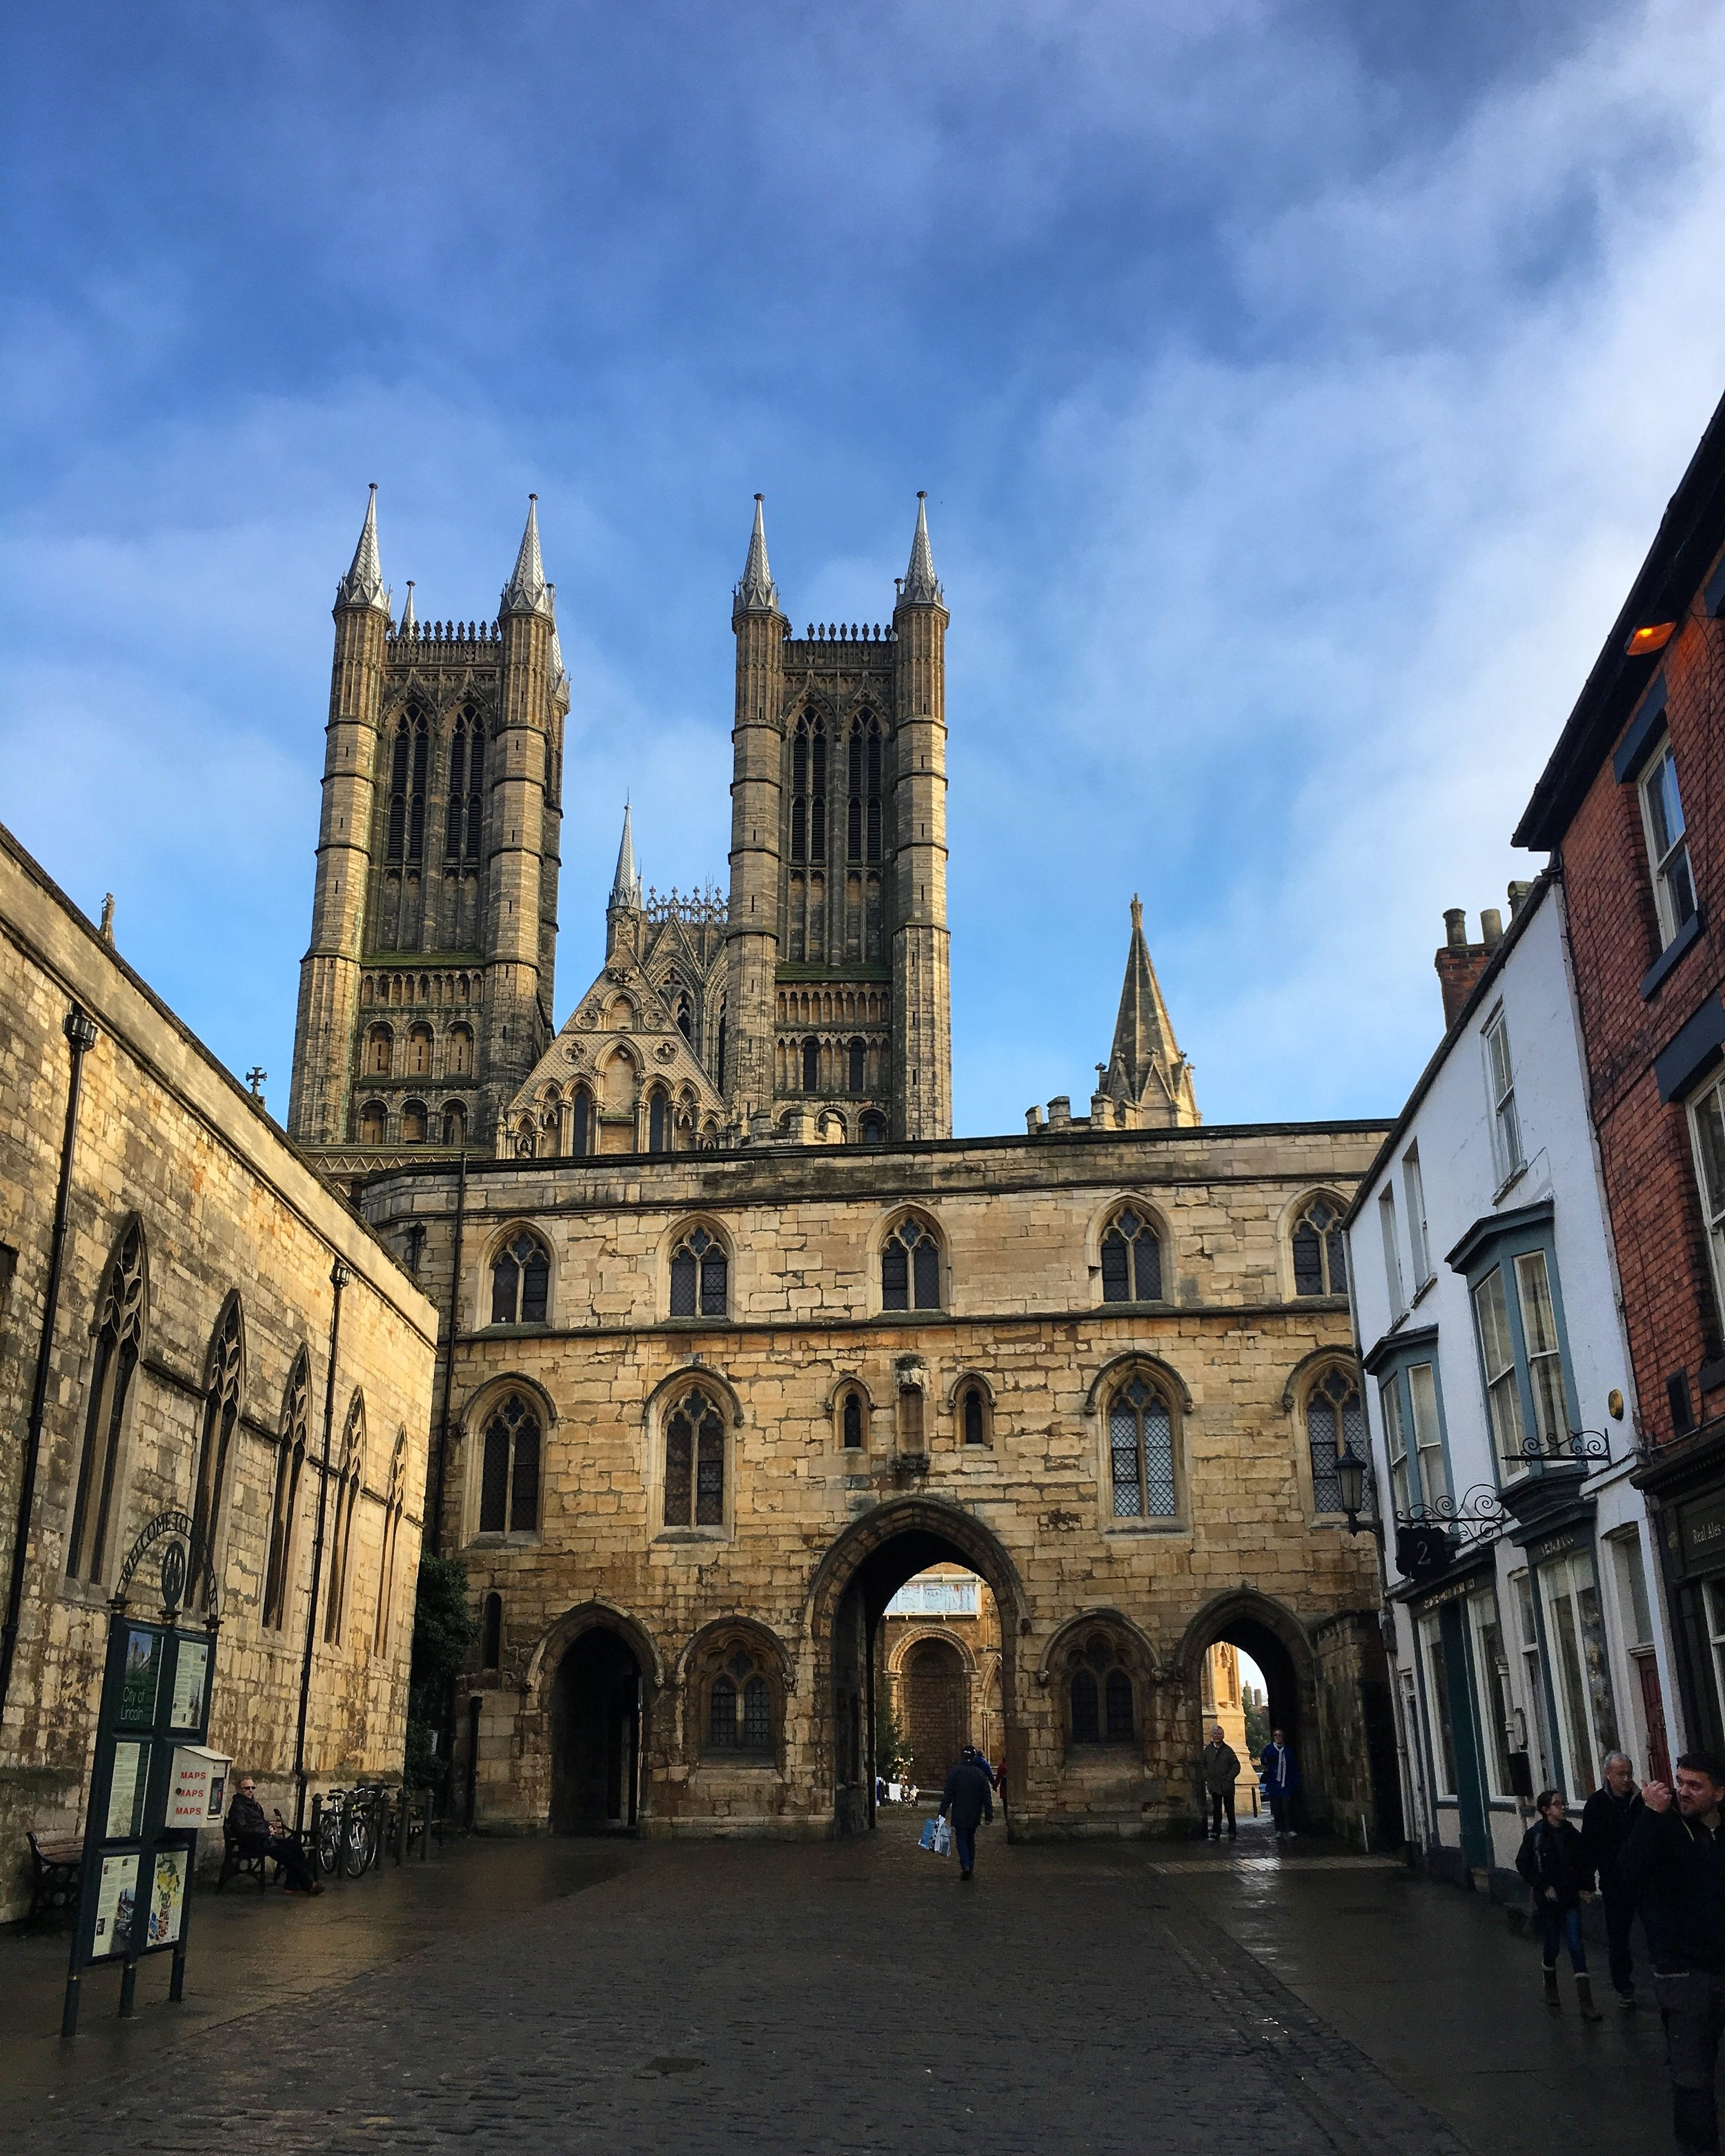 I always know I'm home when I see Lincoln Cathedral